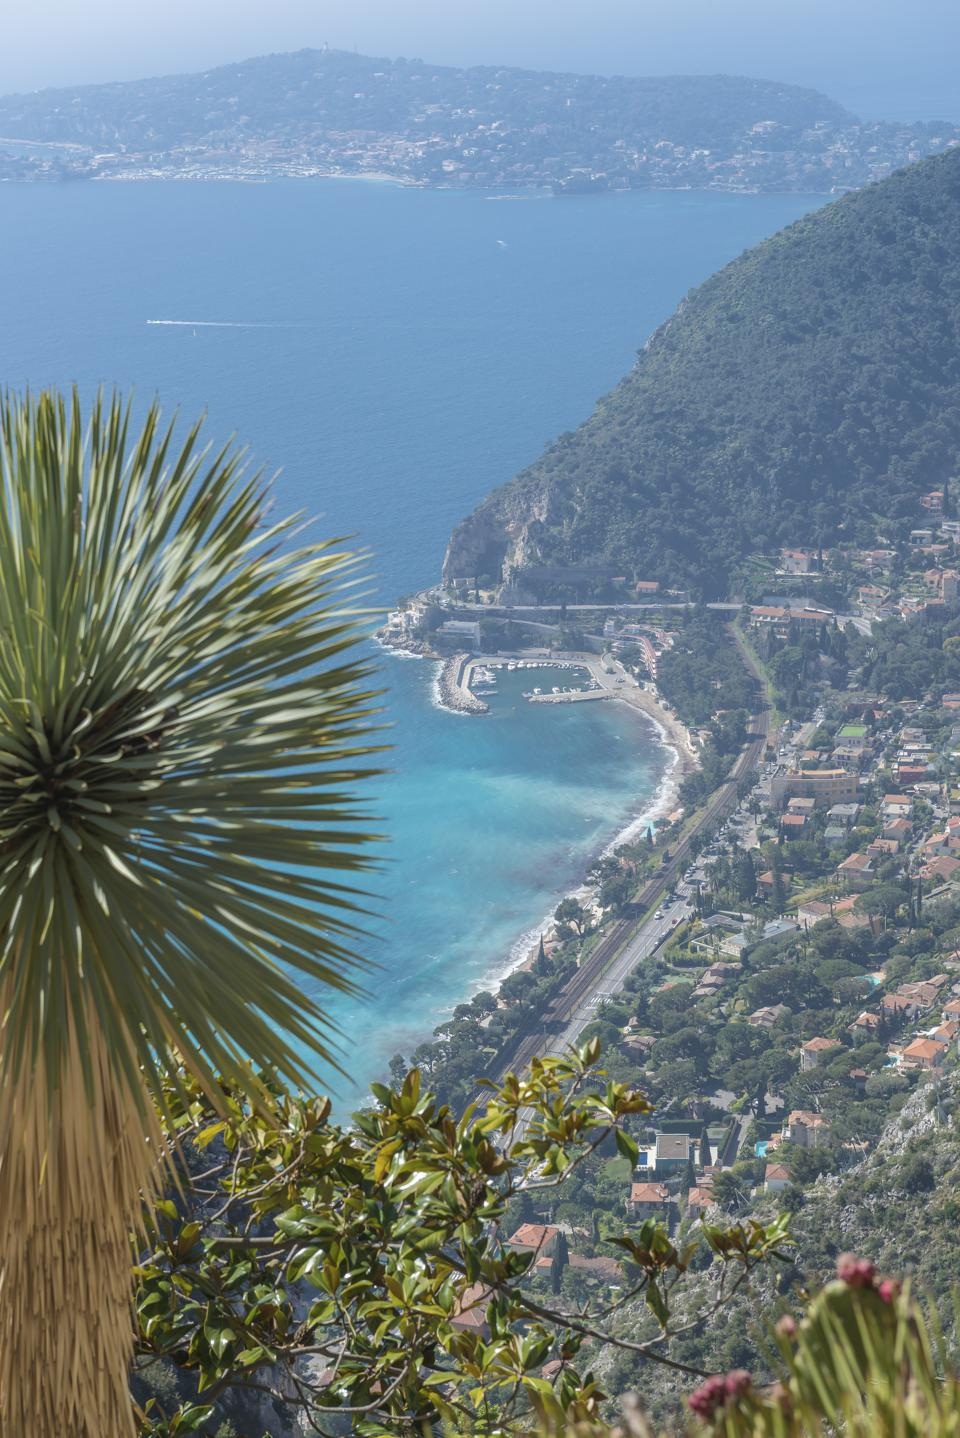 View down onto Eze-sur-Mer and the azure blue Mediterranean